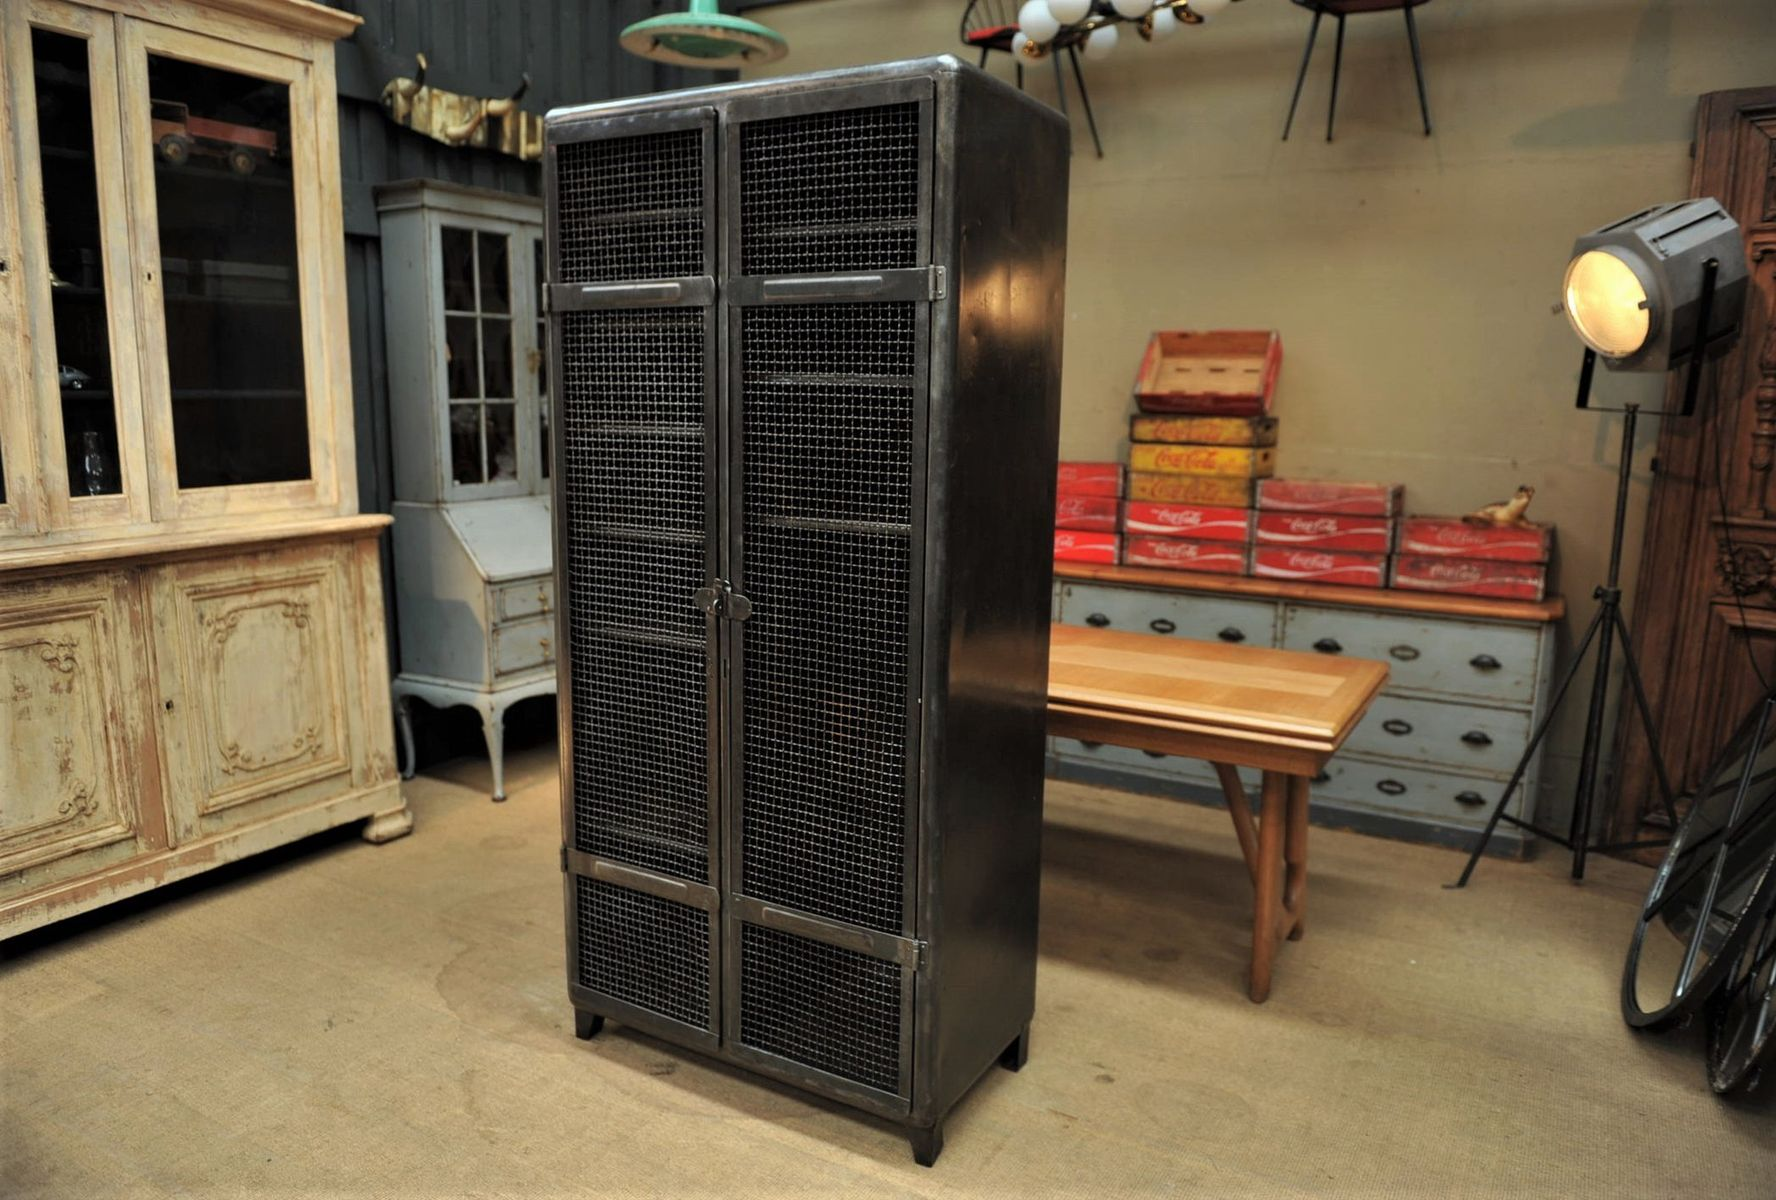 casier industriel avec deux portes grillag es 1950s en. Black Bedroom Furniture Sets. Home Design Ideas